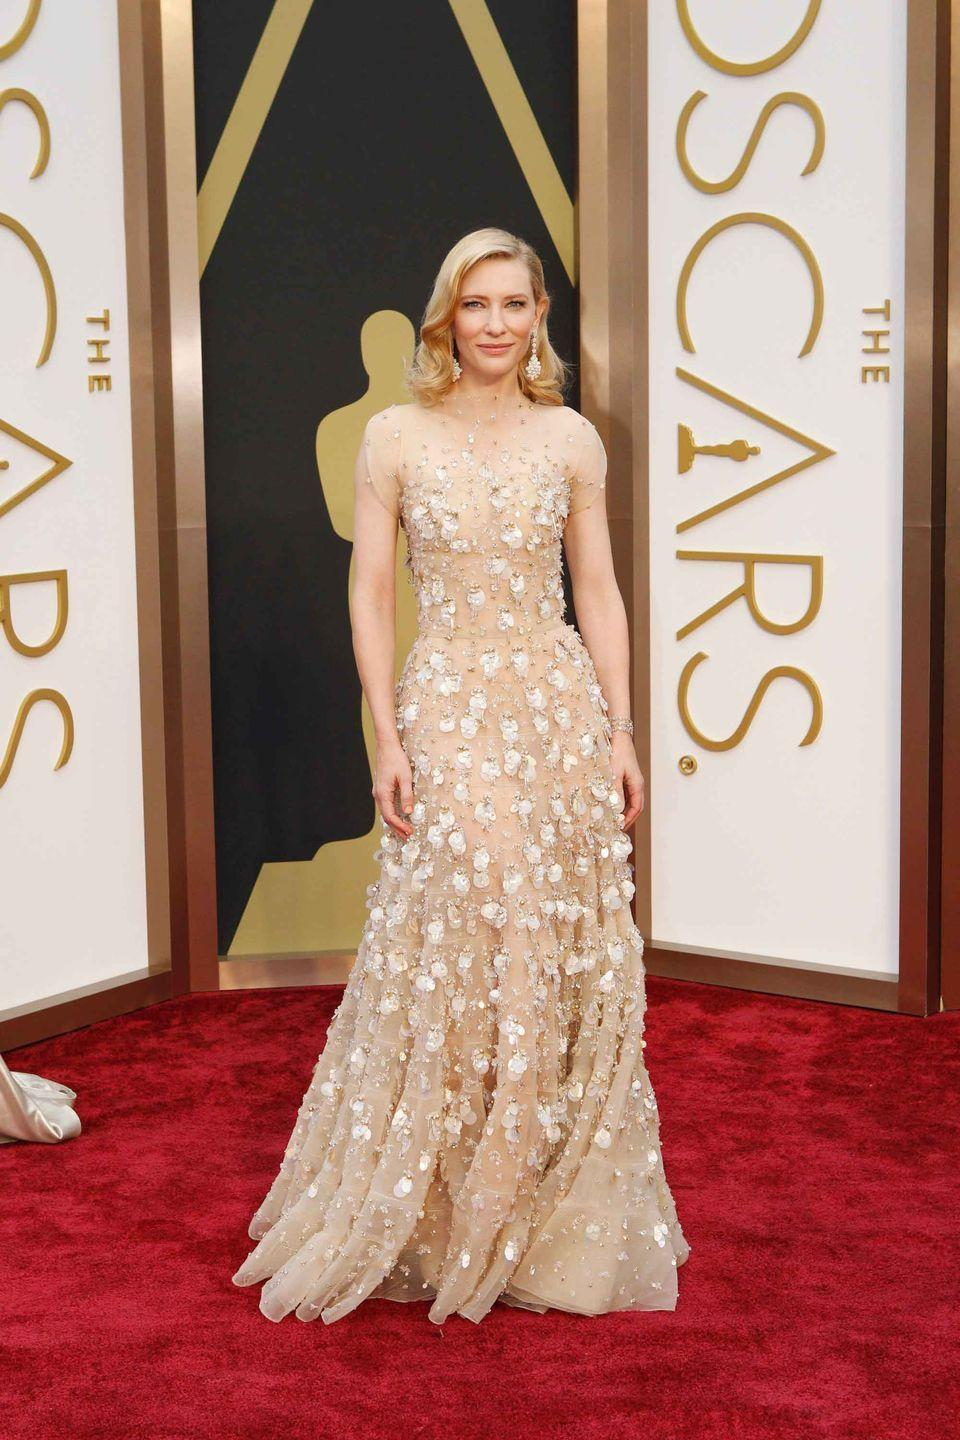 <p>Cate Blanchett in neutral colored Armani Prive gown with flower embellishments.</p>